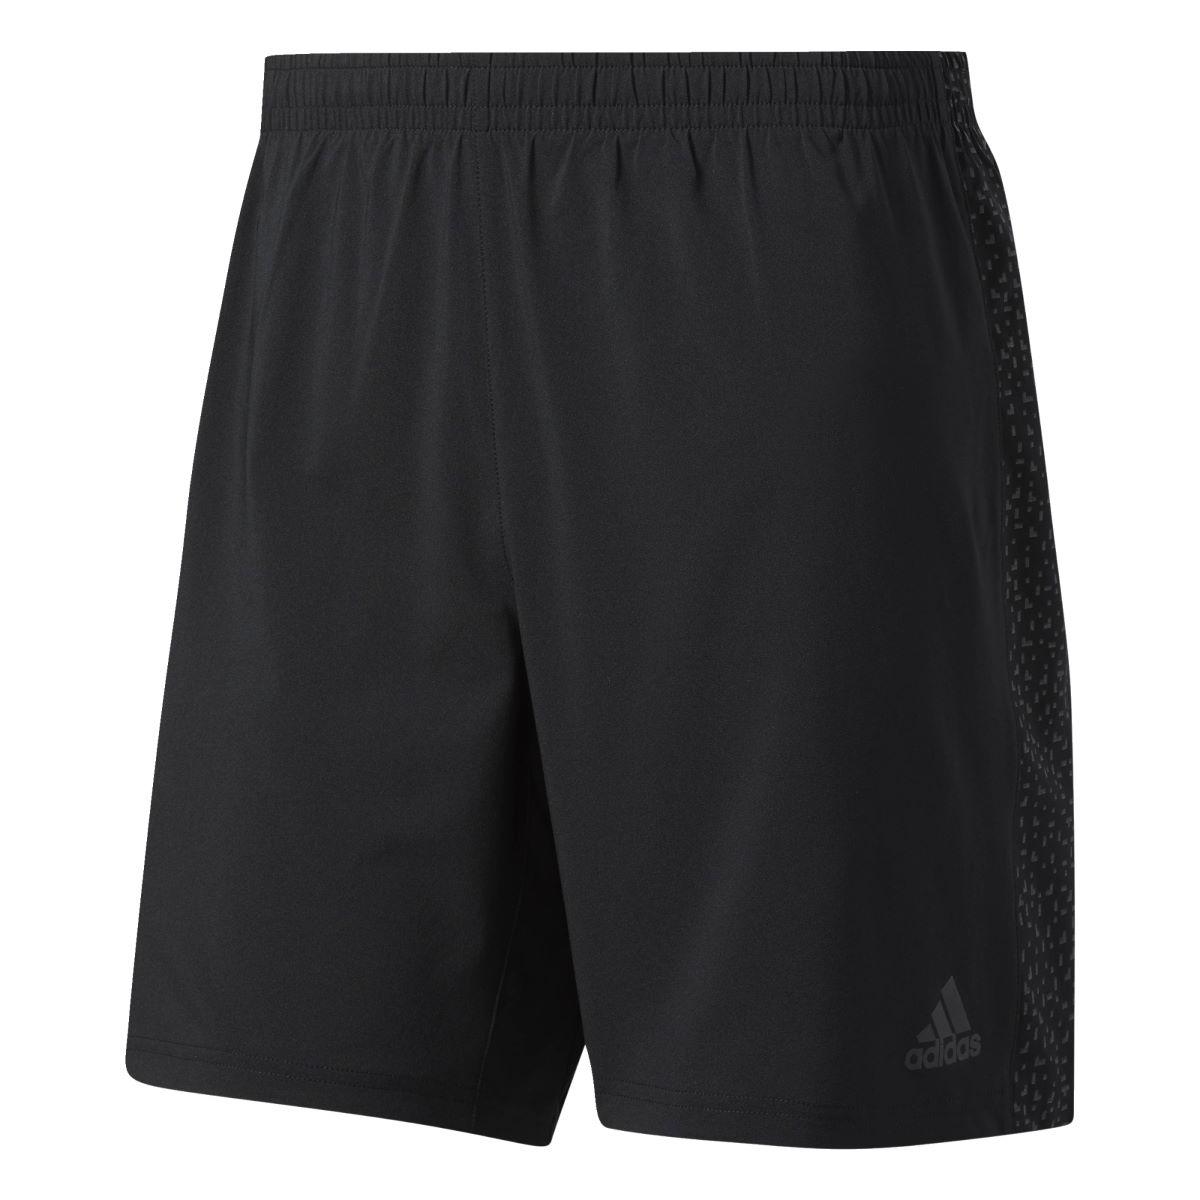 Adidas supernova short internal black ss18 bq7239 s 4